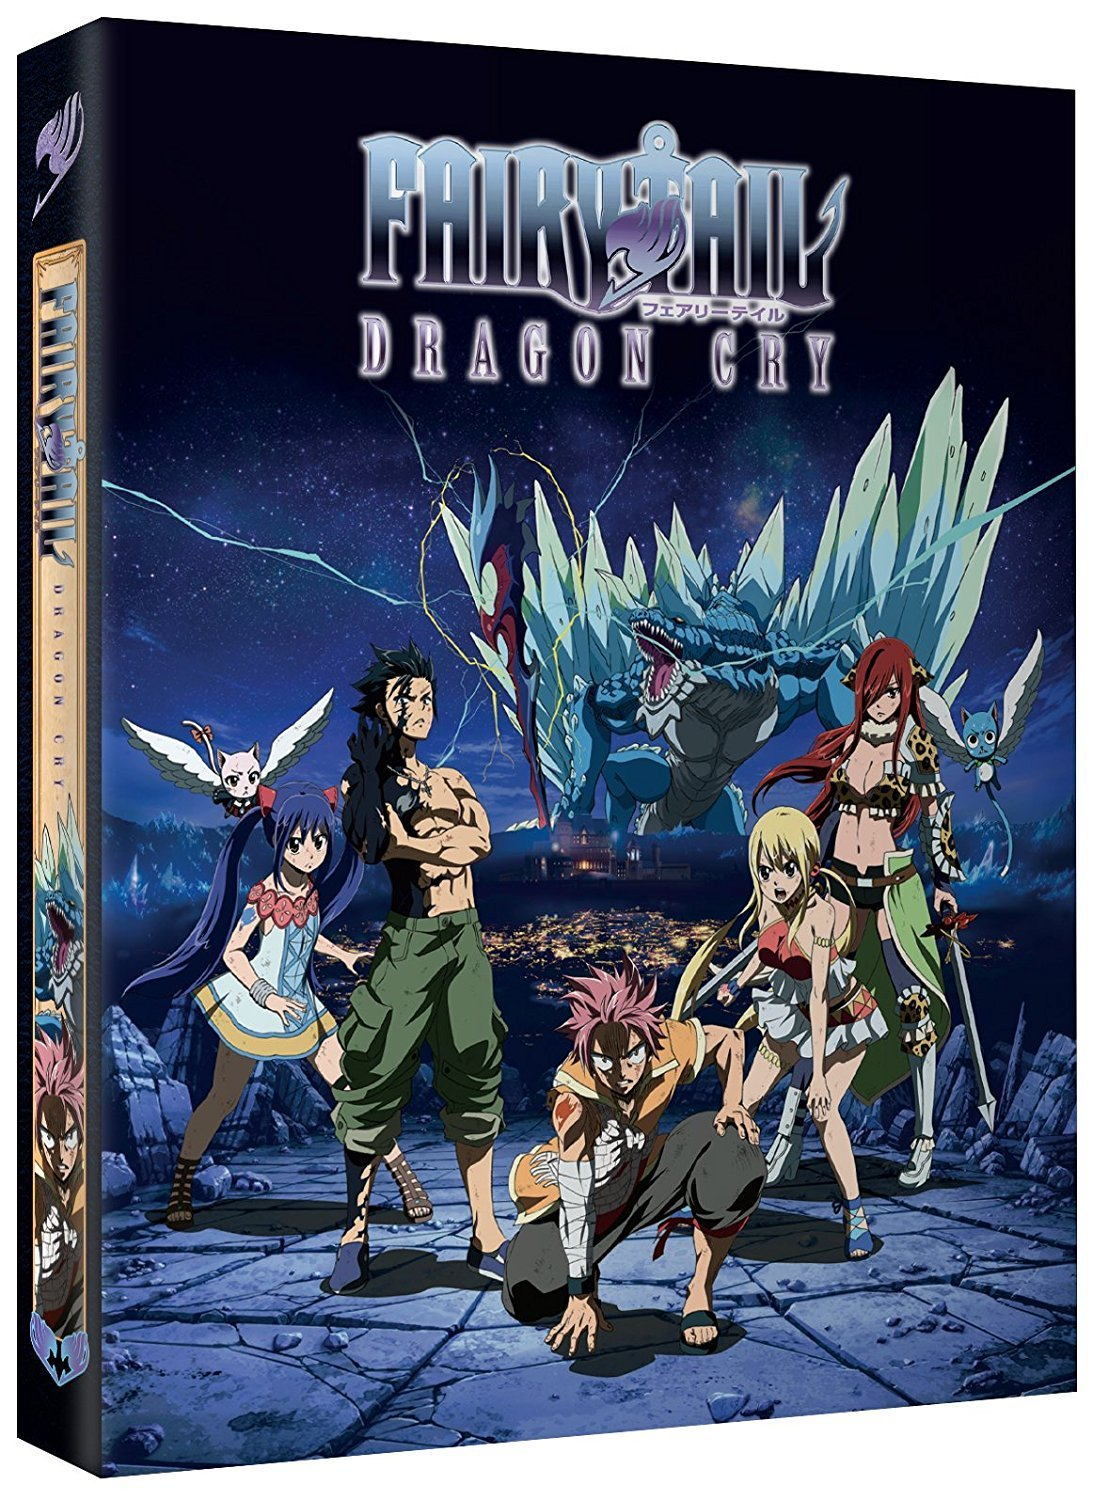 Fairy Tail: Dragon Cry Review - Anime UK News